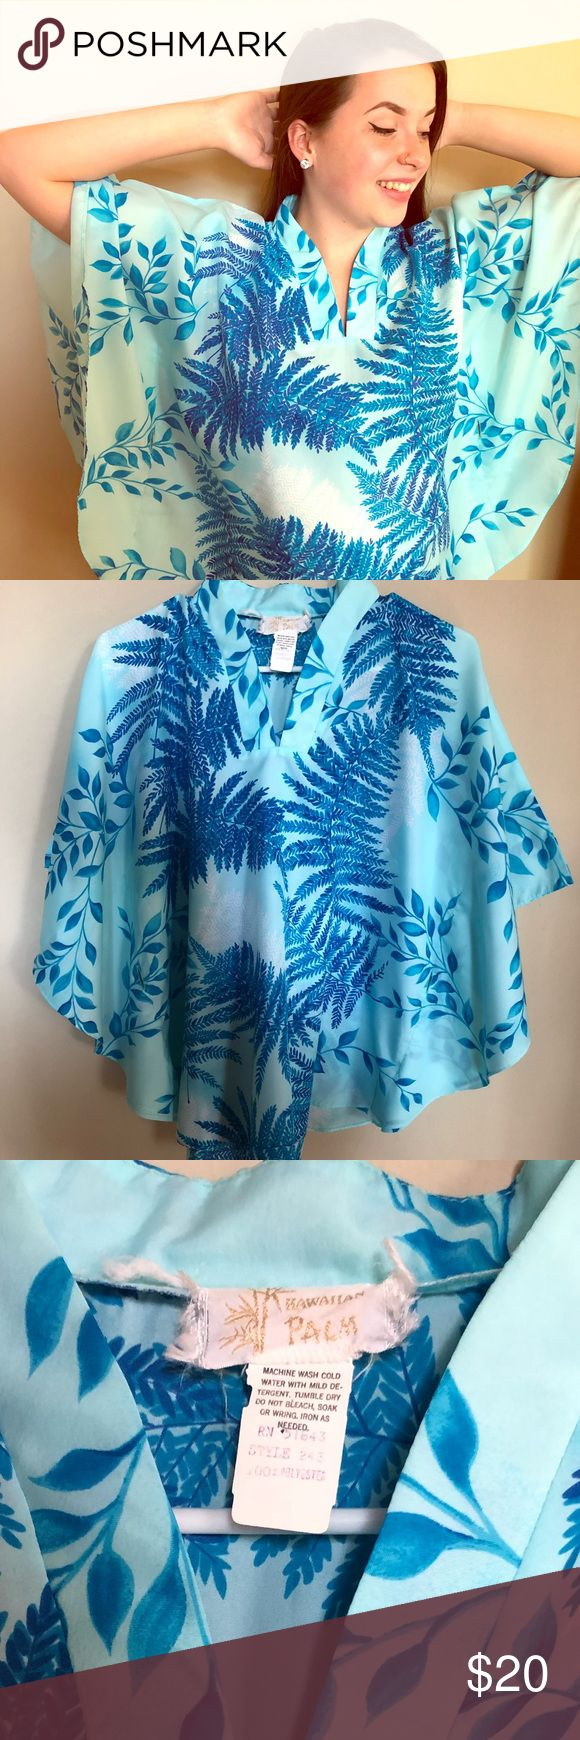 🌴Beautiful Blue and White Blouse S/M Beautiful blue and white blouse. Estimated S/M fit. Holes for belt. Vintage Tops Blouses